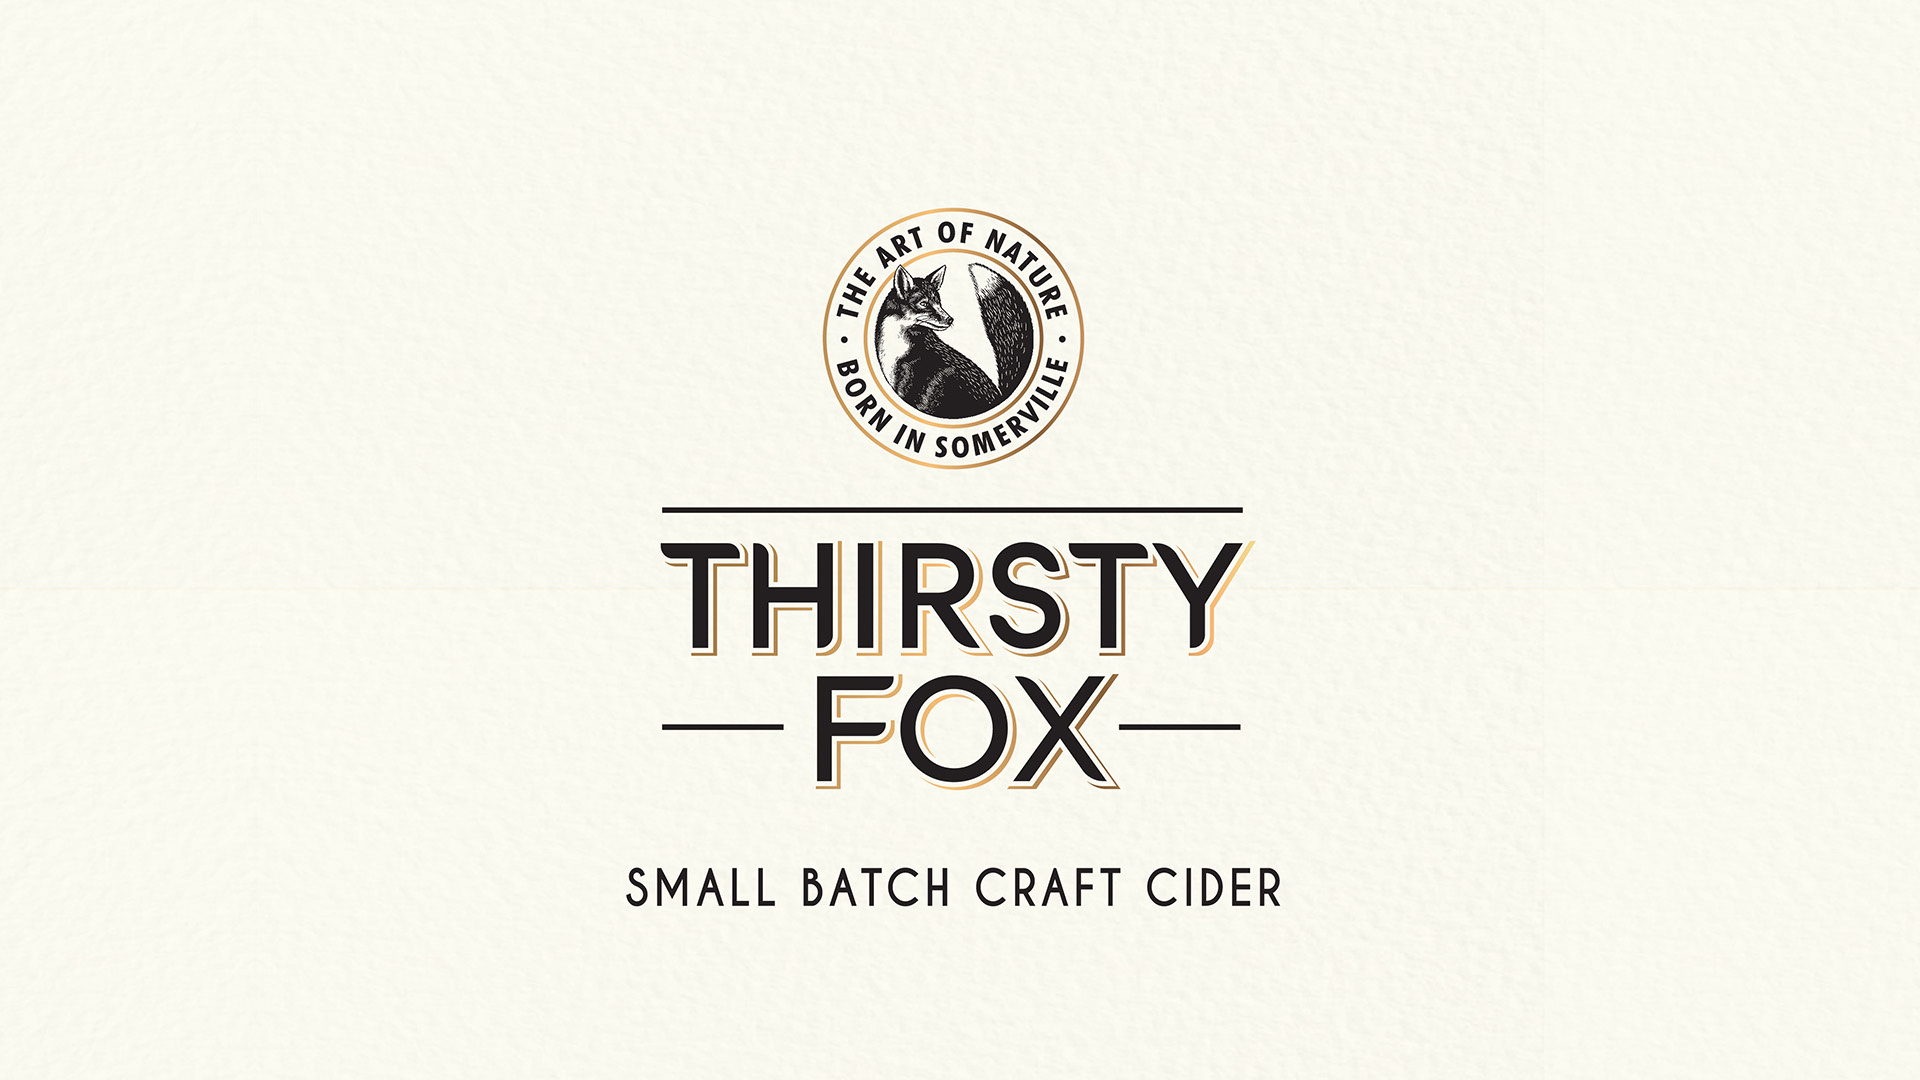 Thirty Fox label design